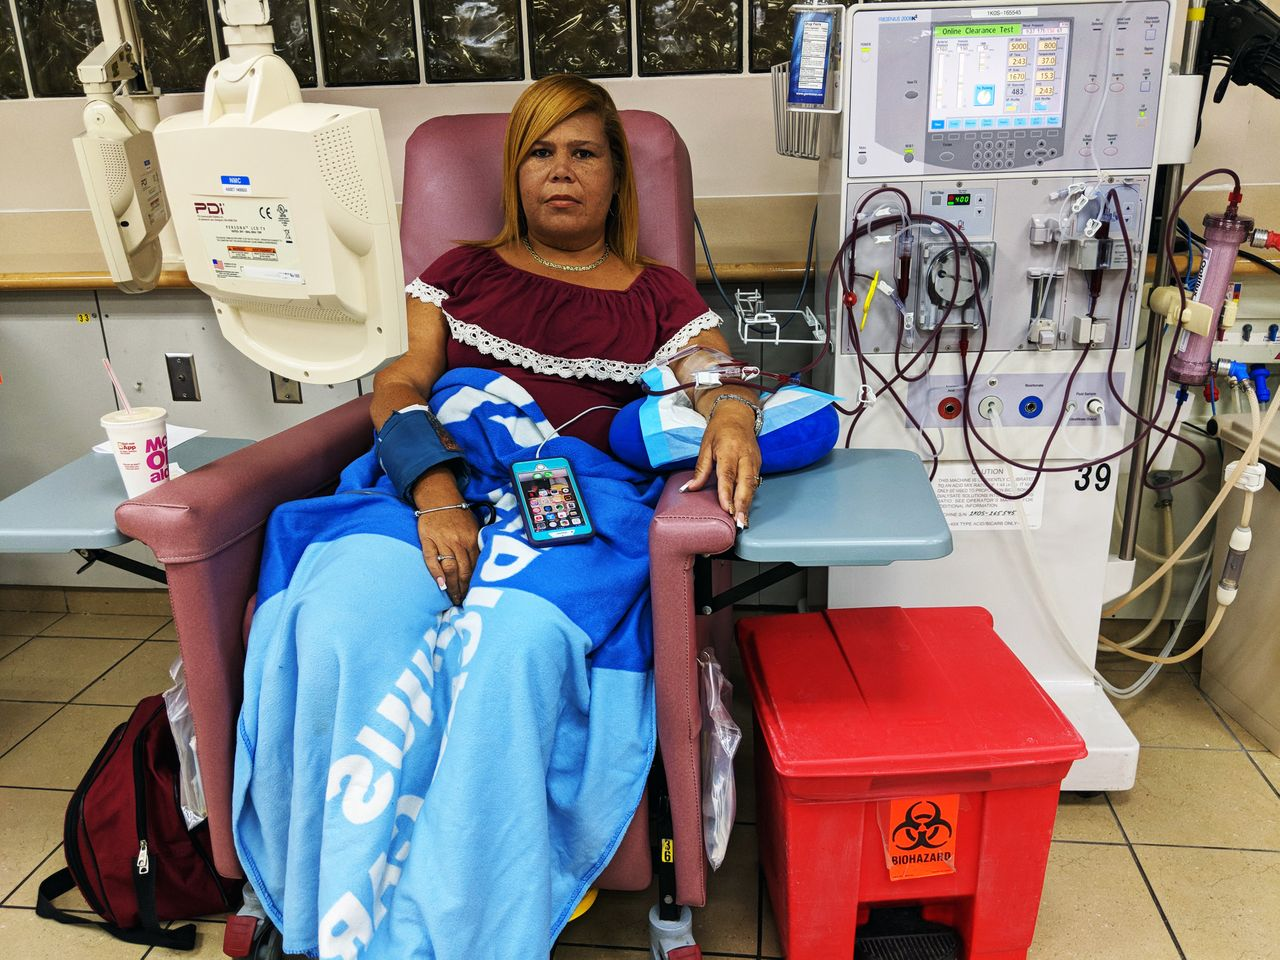 Rivera Acosta usually spends a bit over three hours connected to a hemodialysis machine for her dialysis treatment.